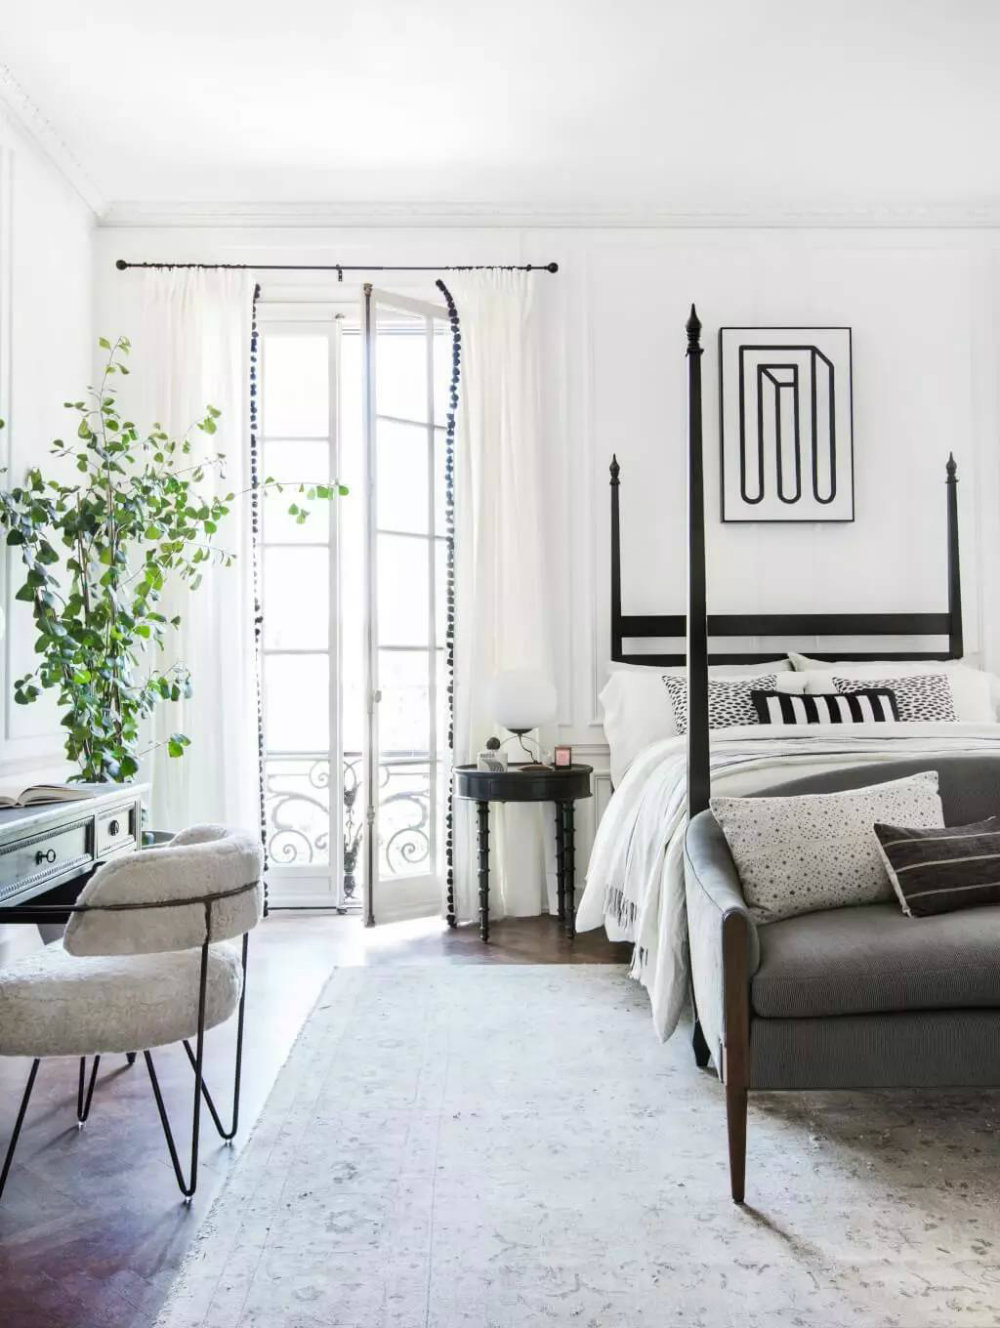 Discover the Bedroom Colors Top Interior Designers Love 06 Bedroom Colors Discover the Bedroom Colors Top Interior Designers Love Discover the Bedroom Colors Top Interior Designers Love 06